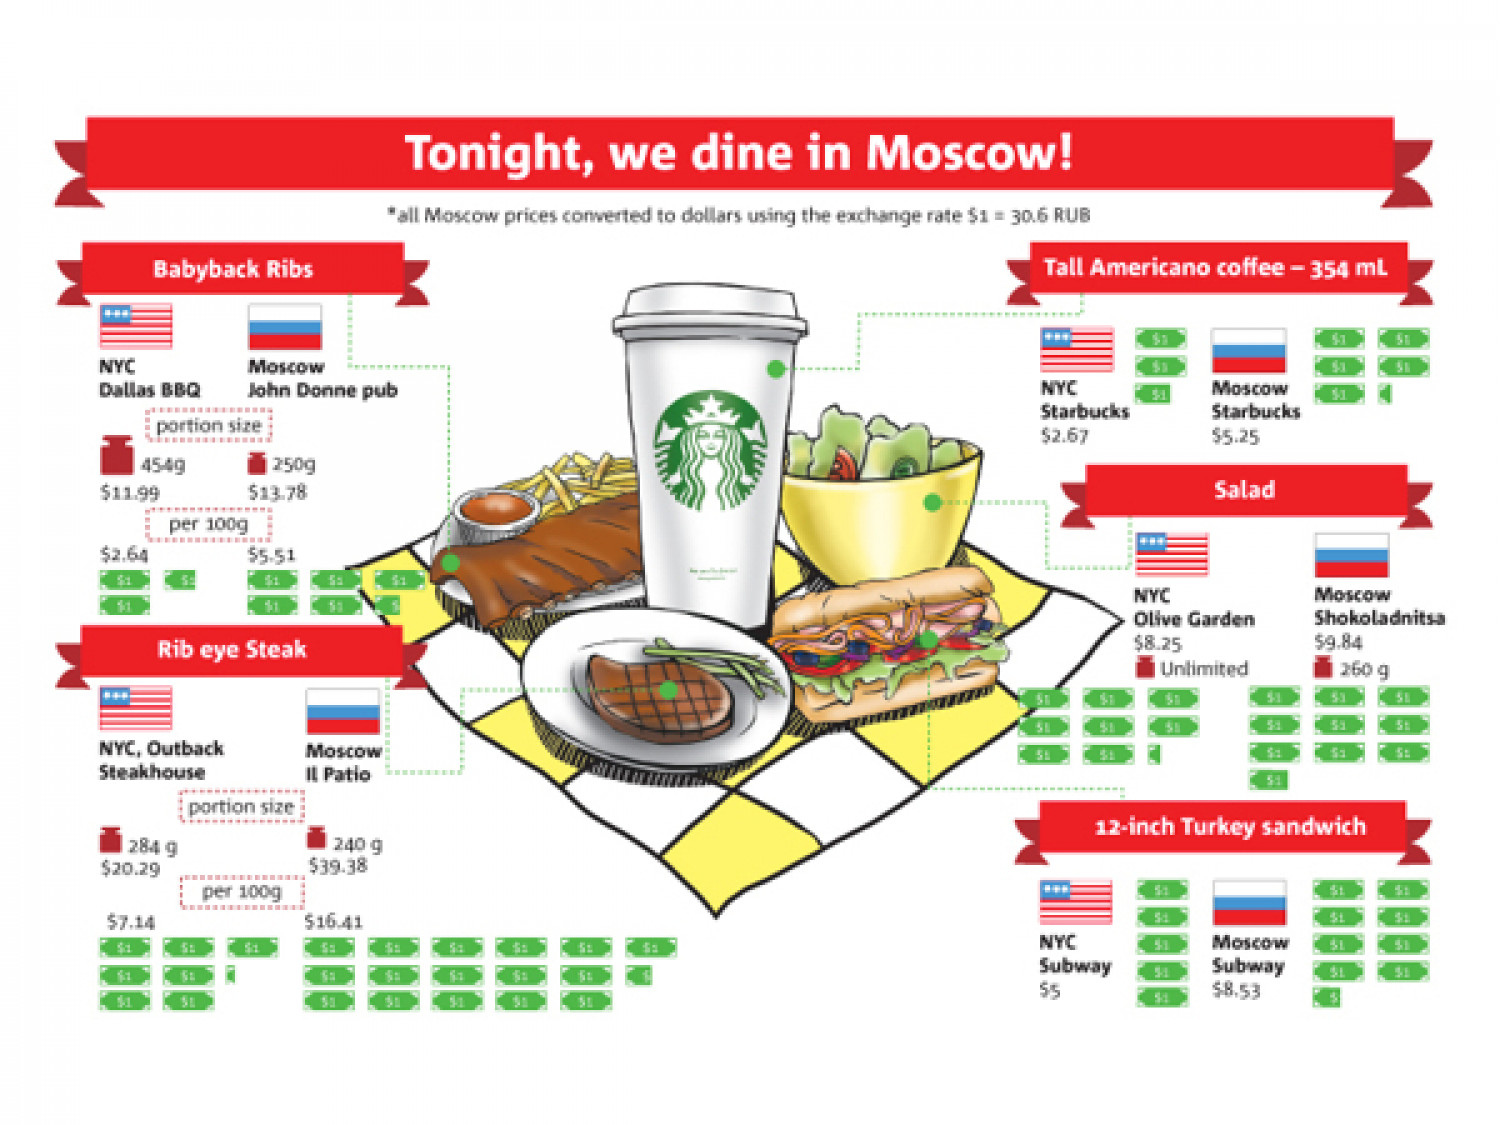 Tonight, we dine in Moscow! Infographic